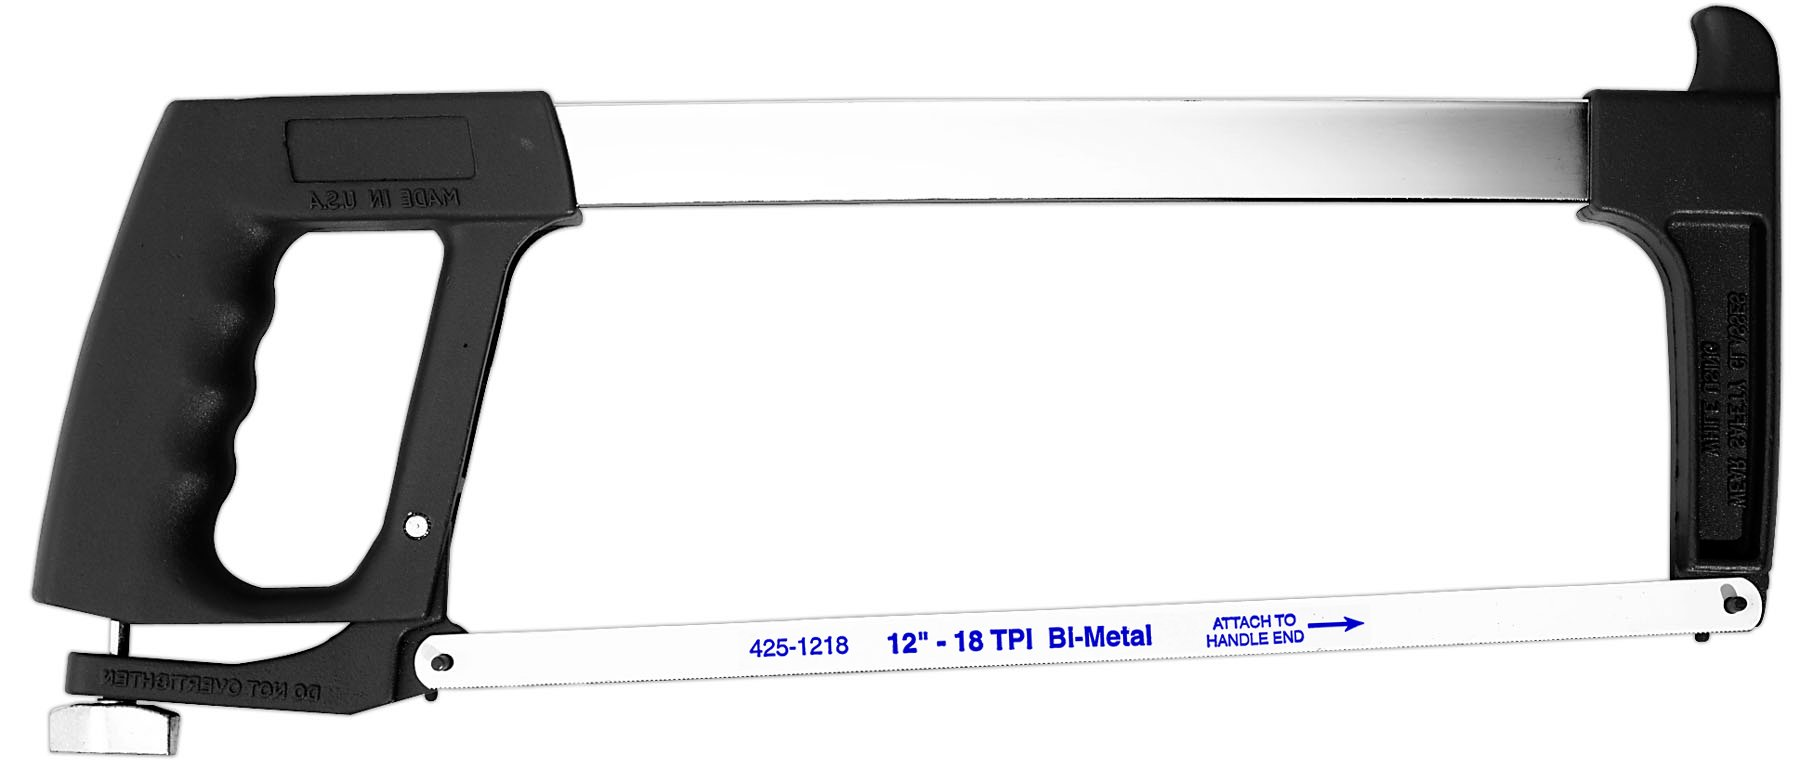 MAGBIT 425.0001 MAG425 Heavy Duty Hack Saw with Blade